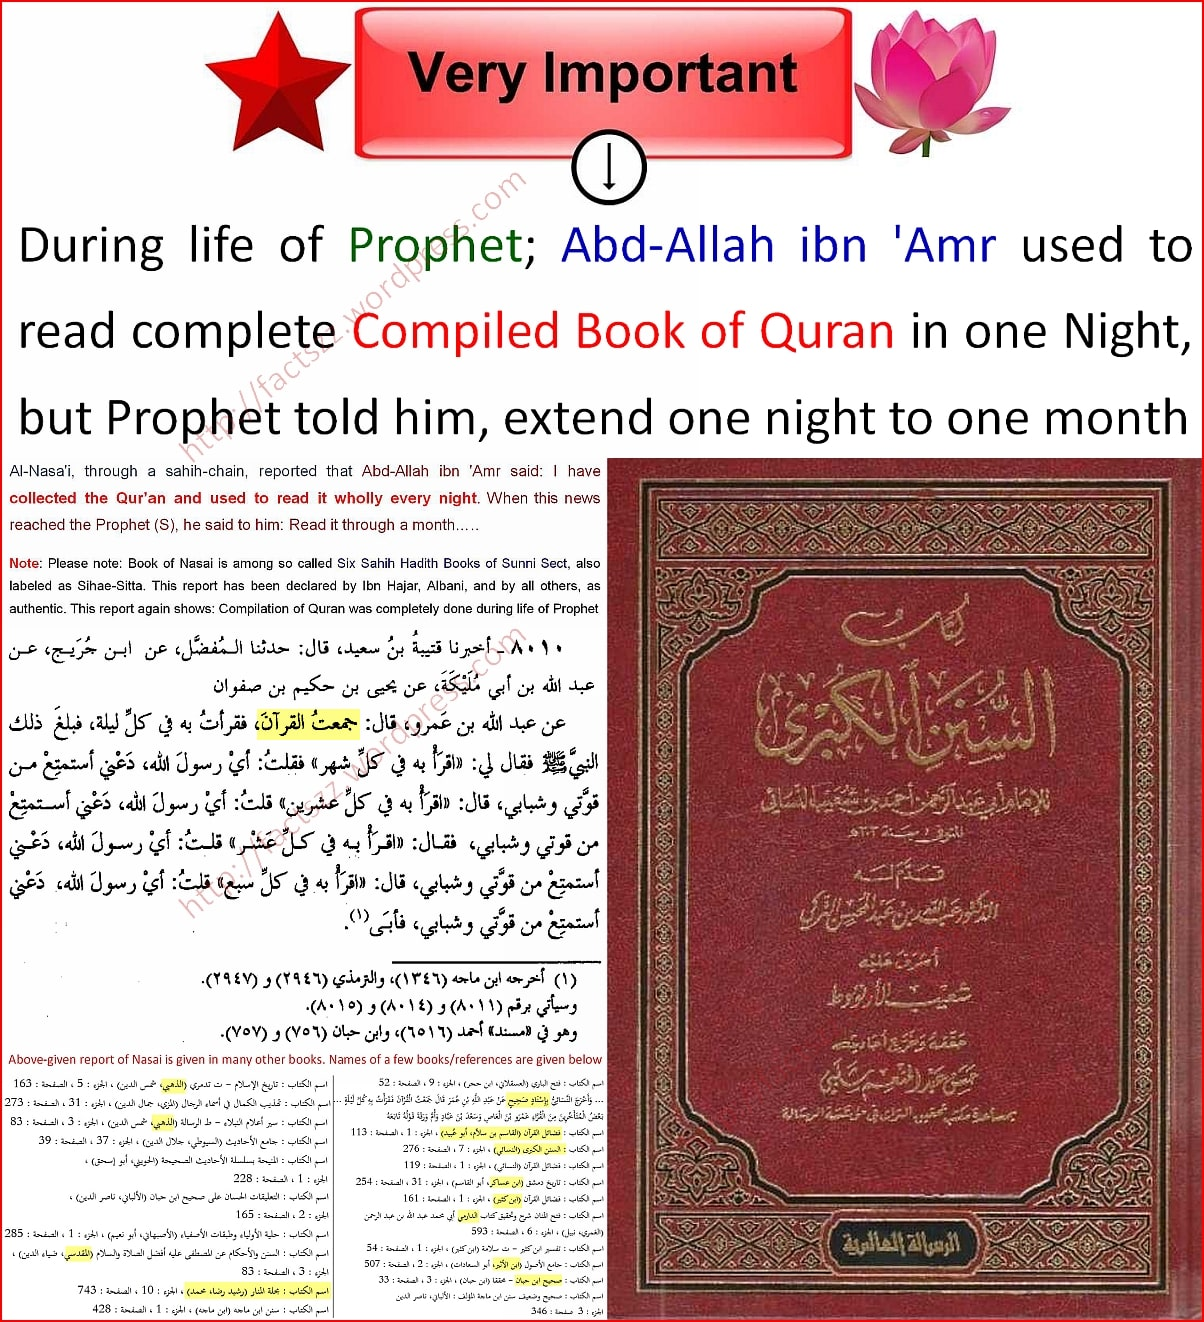 Complete Quran was compiled in Book form by Prophet Mohammad